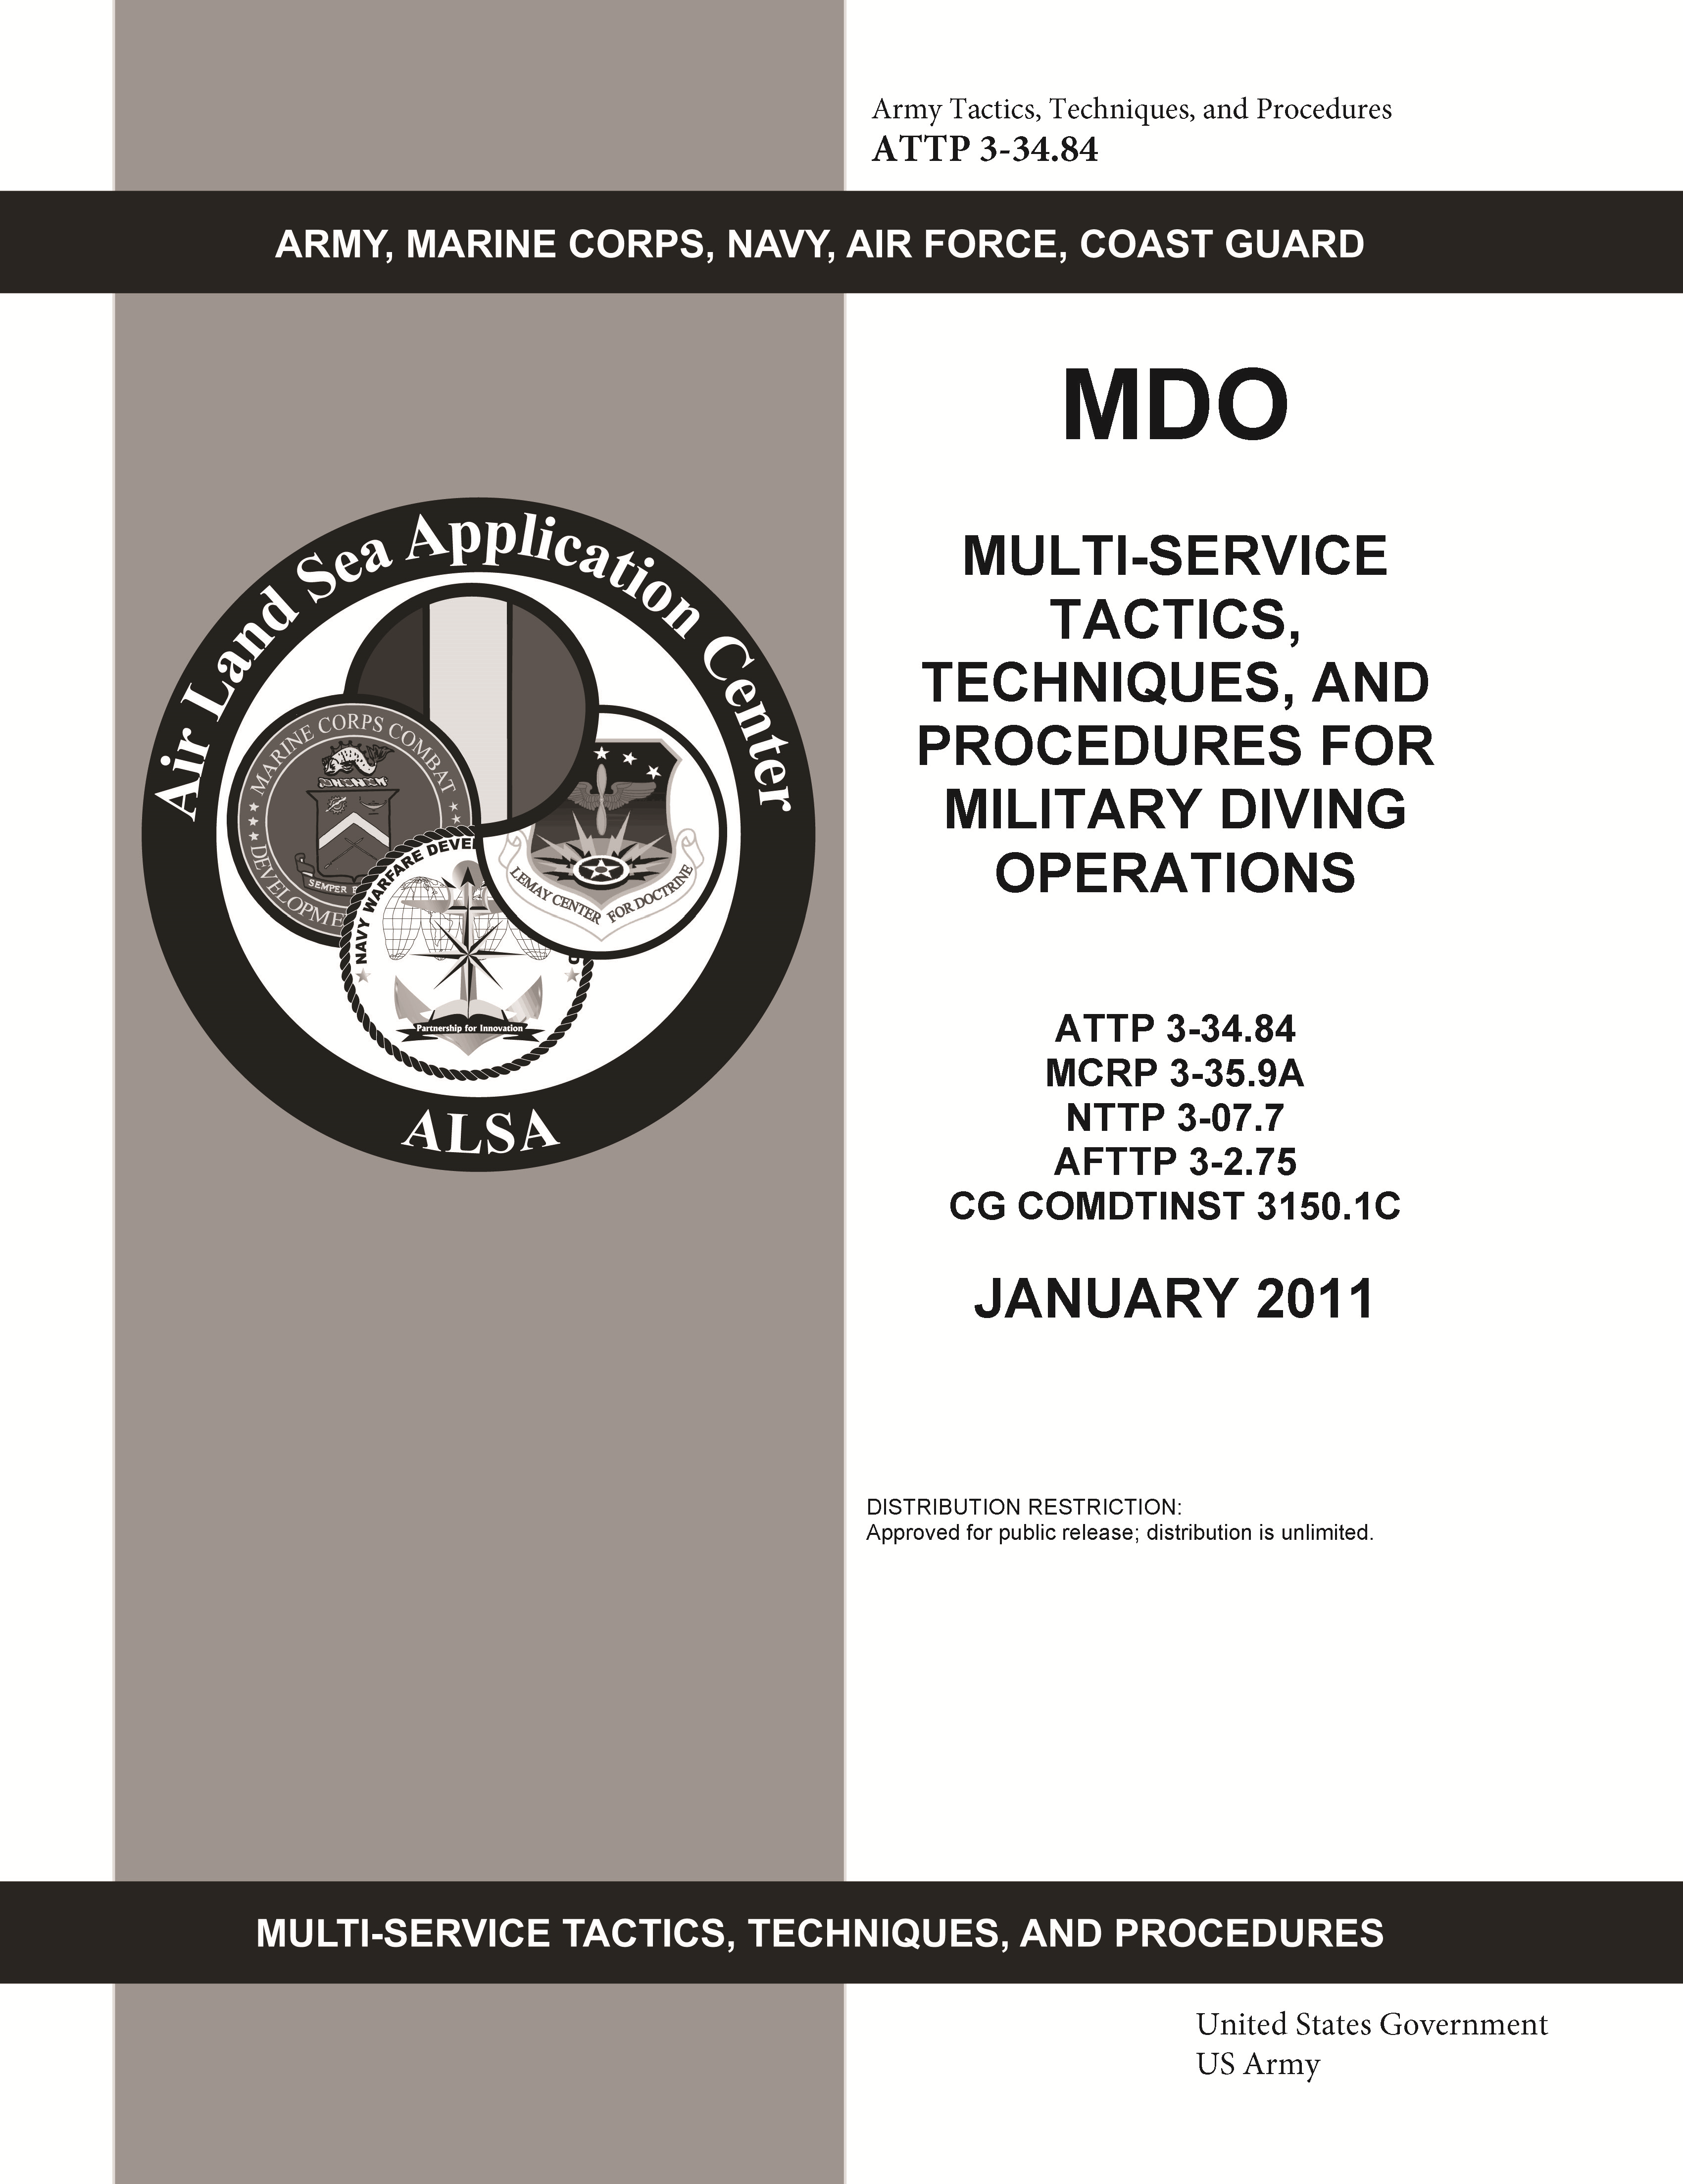 ATTP 3-34.84 MDO Multi-Service Tactics, Techniques, and Procedures for Military Diving Operations